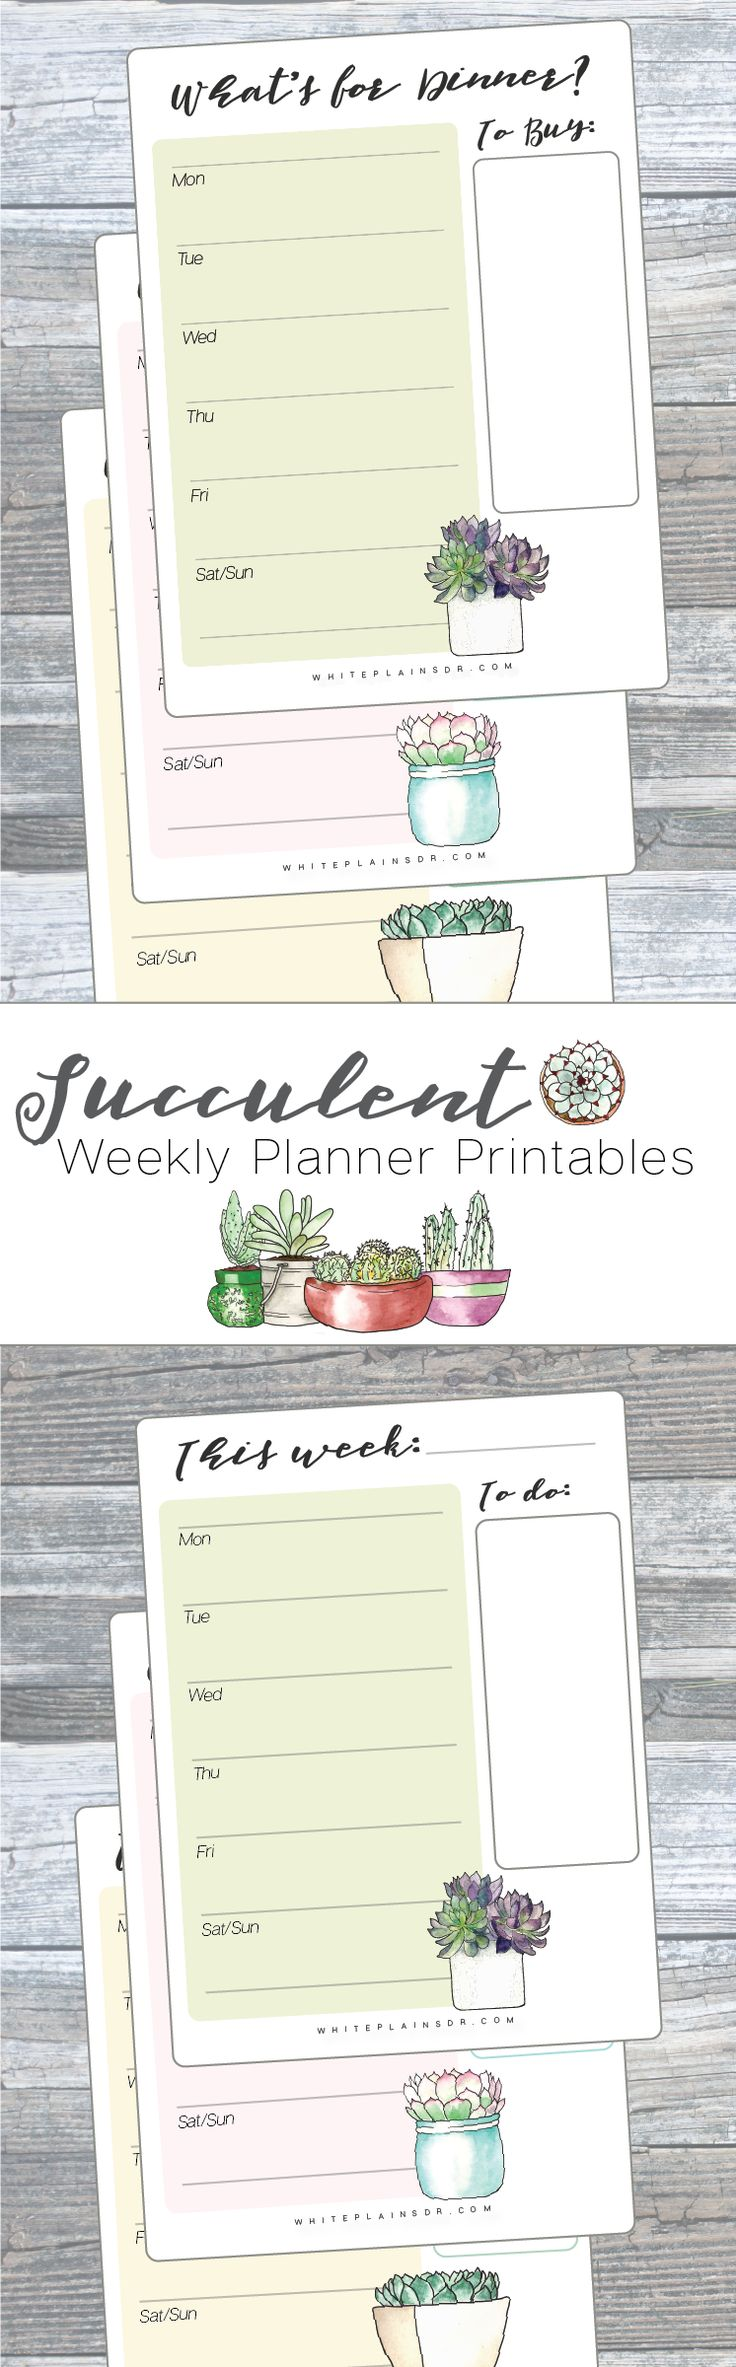 Free Succulent Weekly Planner and Meal Planner Printables by White Plains Dr.